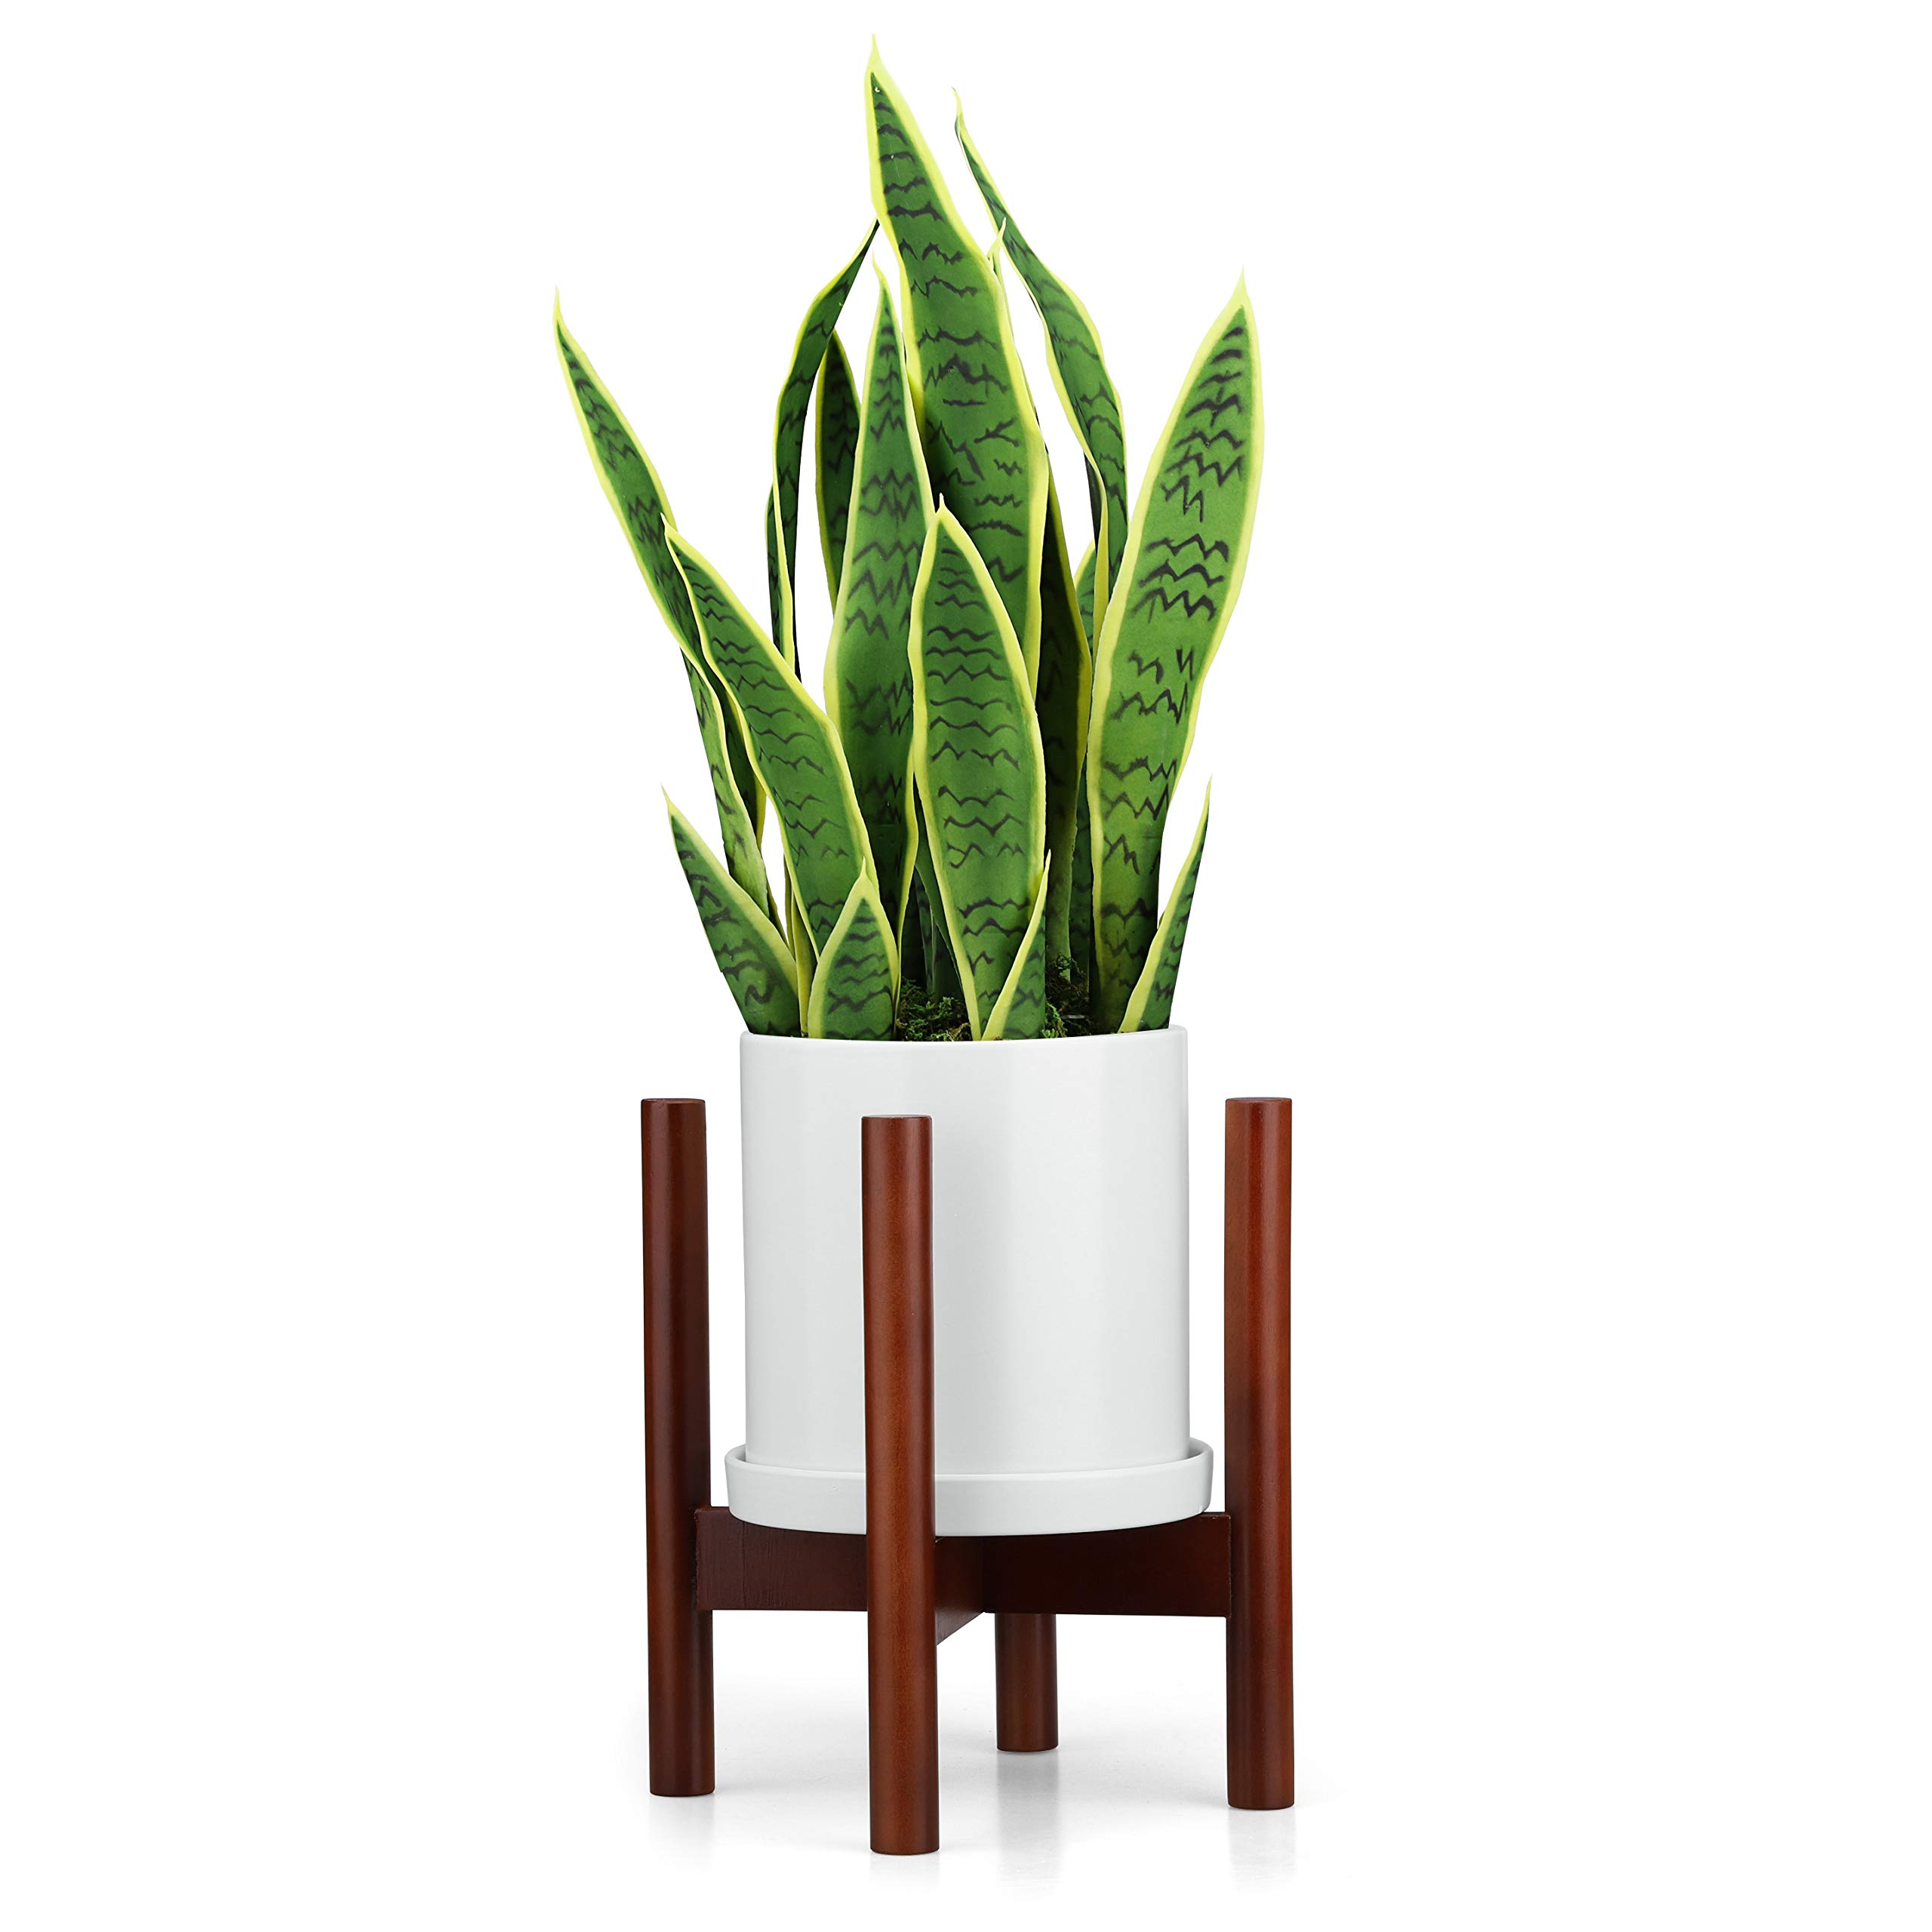 Mid Century Modern Plant Stand with Square Legs Planter Stand Walnut Wood Retro Home Decor (8 inch)